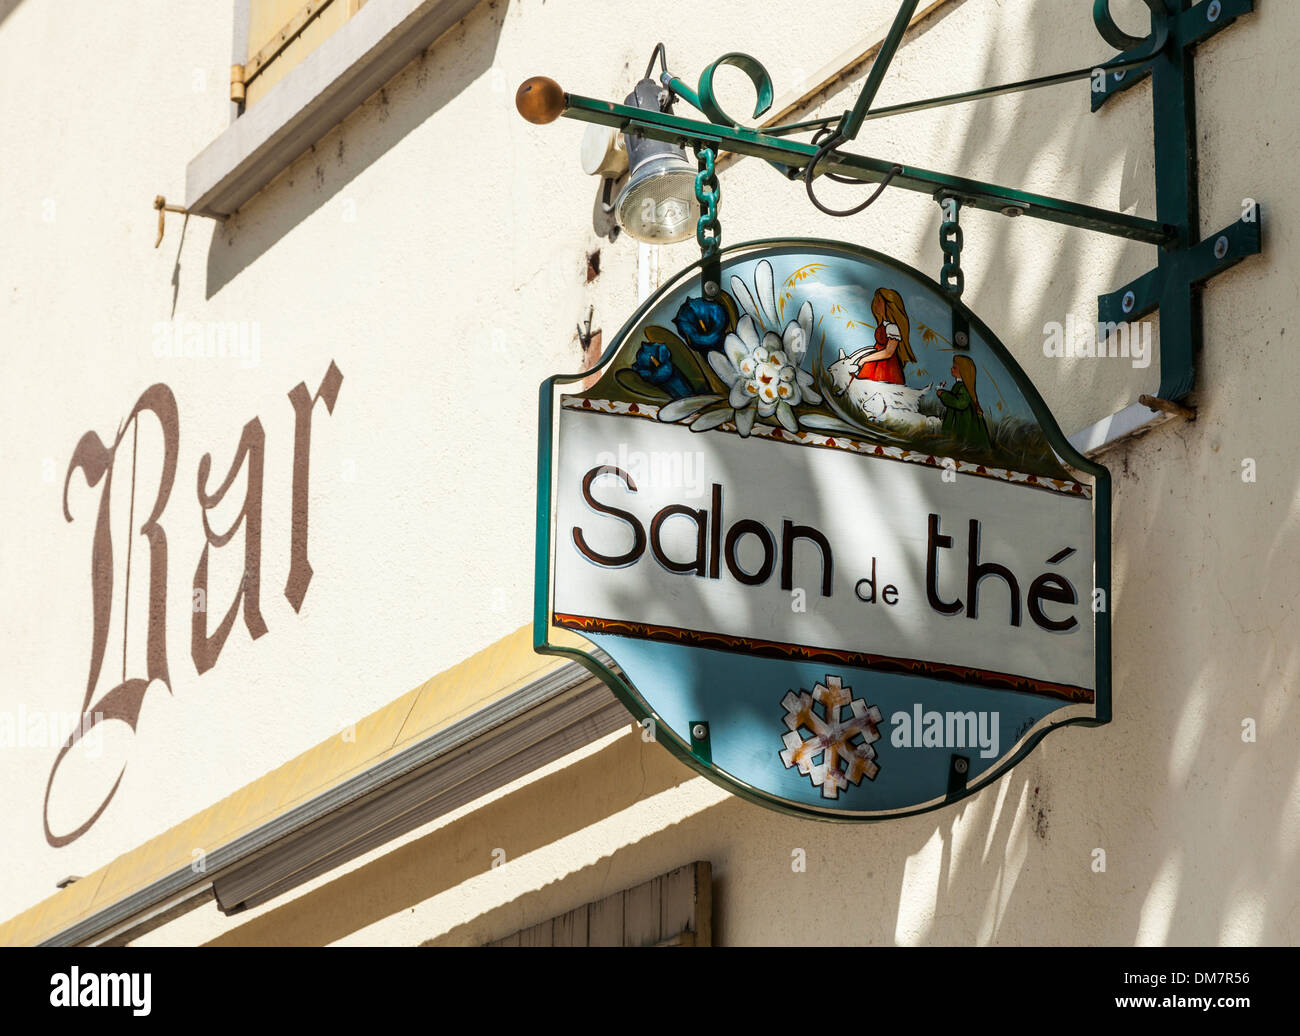 Salon de The sign in the village of Beaufort, Savoie, France - Stock Image